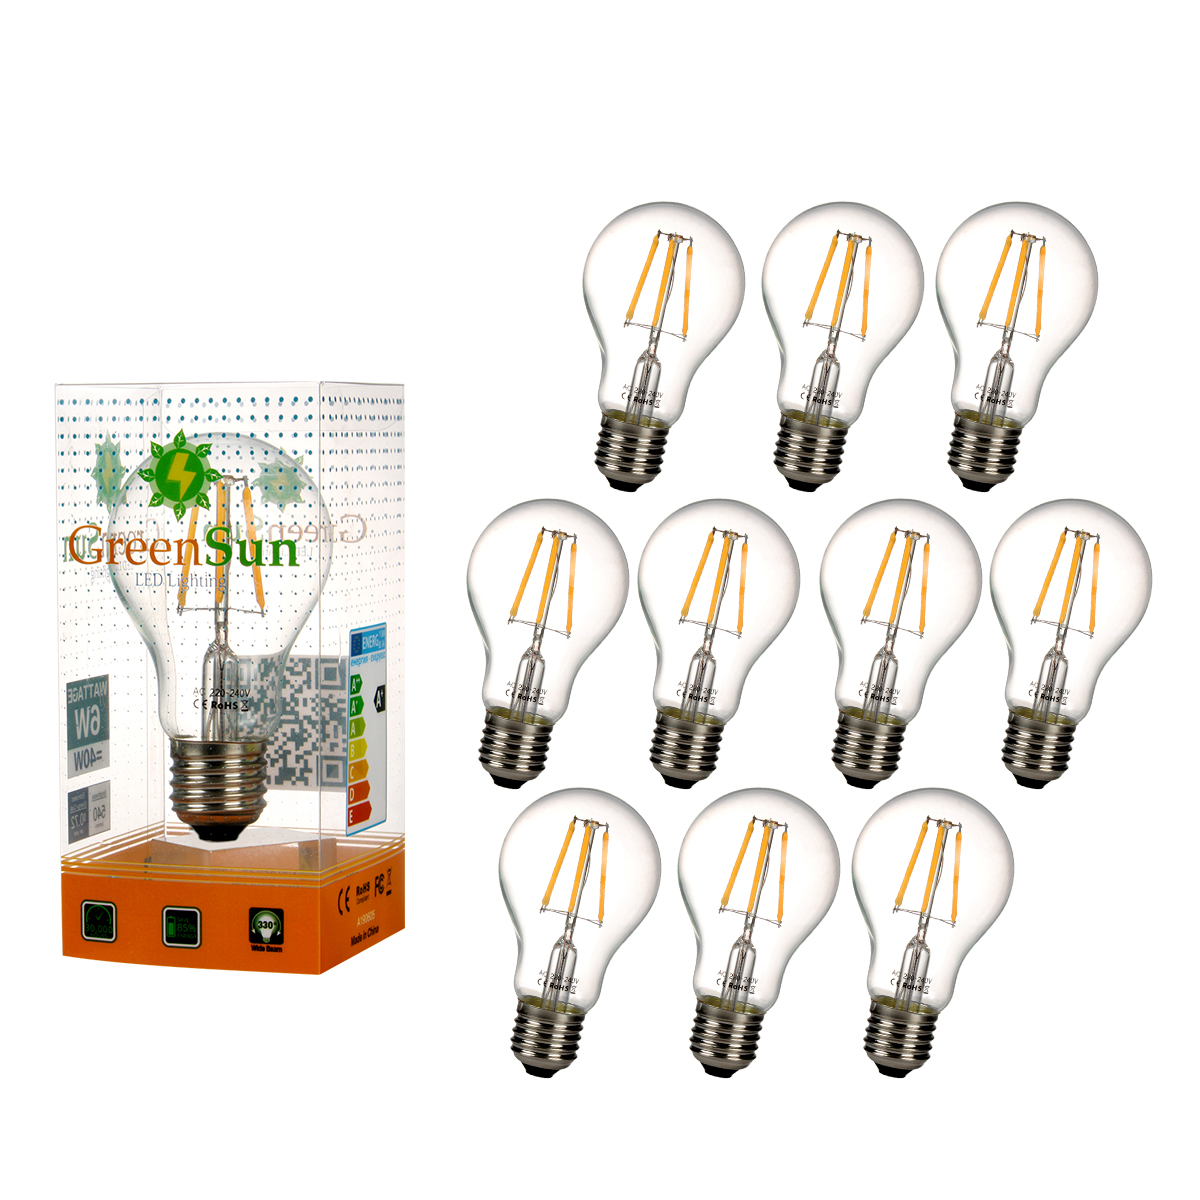 10Pcs E27 6W Edison Filament Warm White LED Energy Saving Bulb Light Lamp high brightness 1pcs led edison bulb indoor led light clear glass ac220 230v e27 2w 4w 6w 8w led filament bulb white warm white